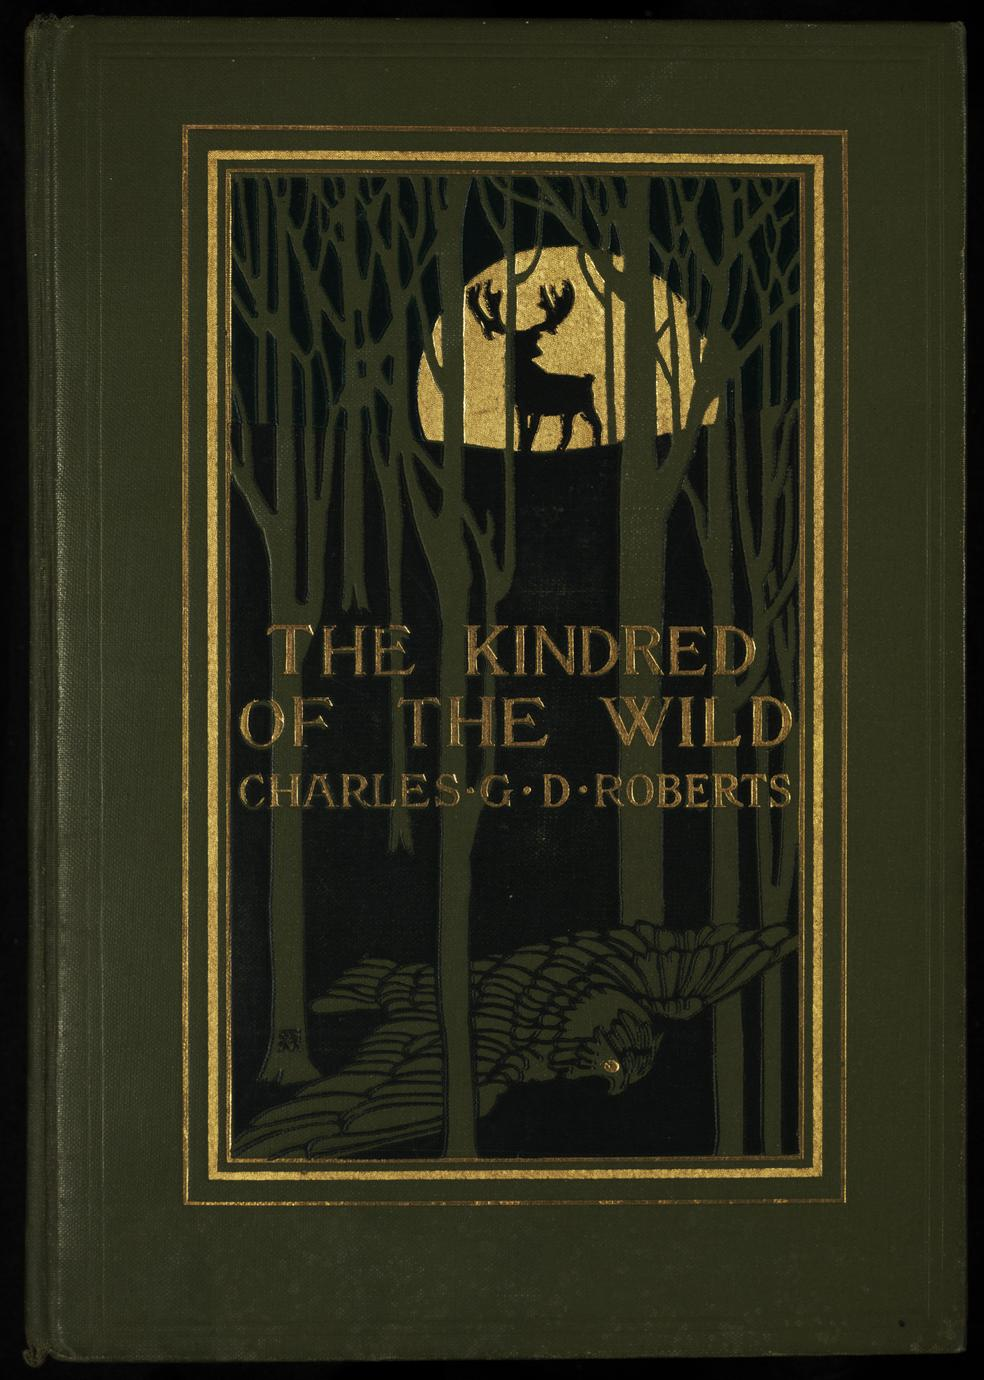 The kindred of the wild : a book of animal life (1 of 3)